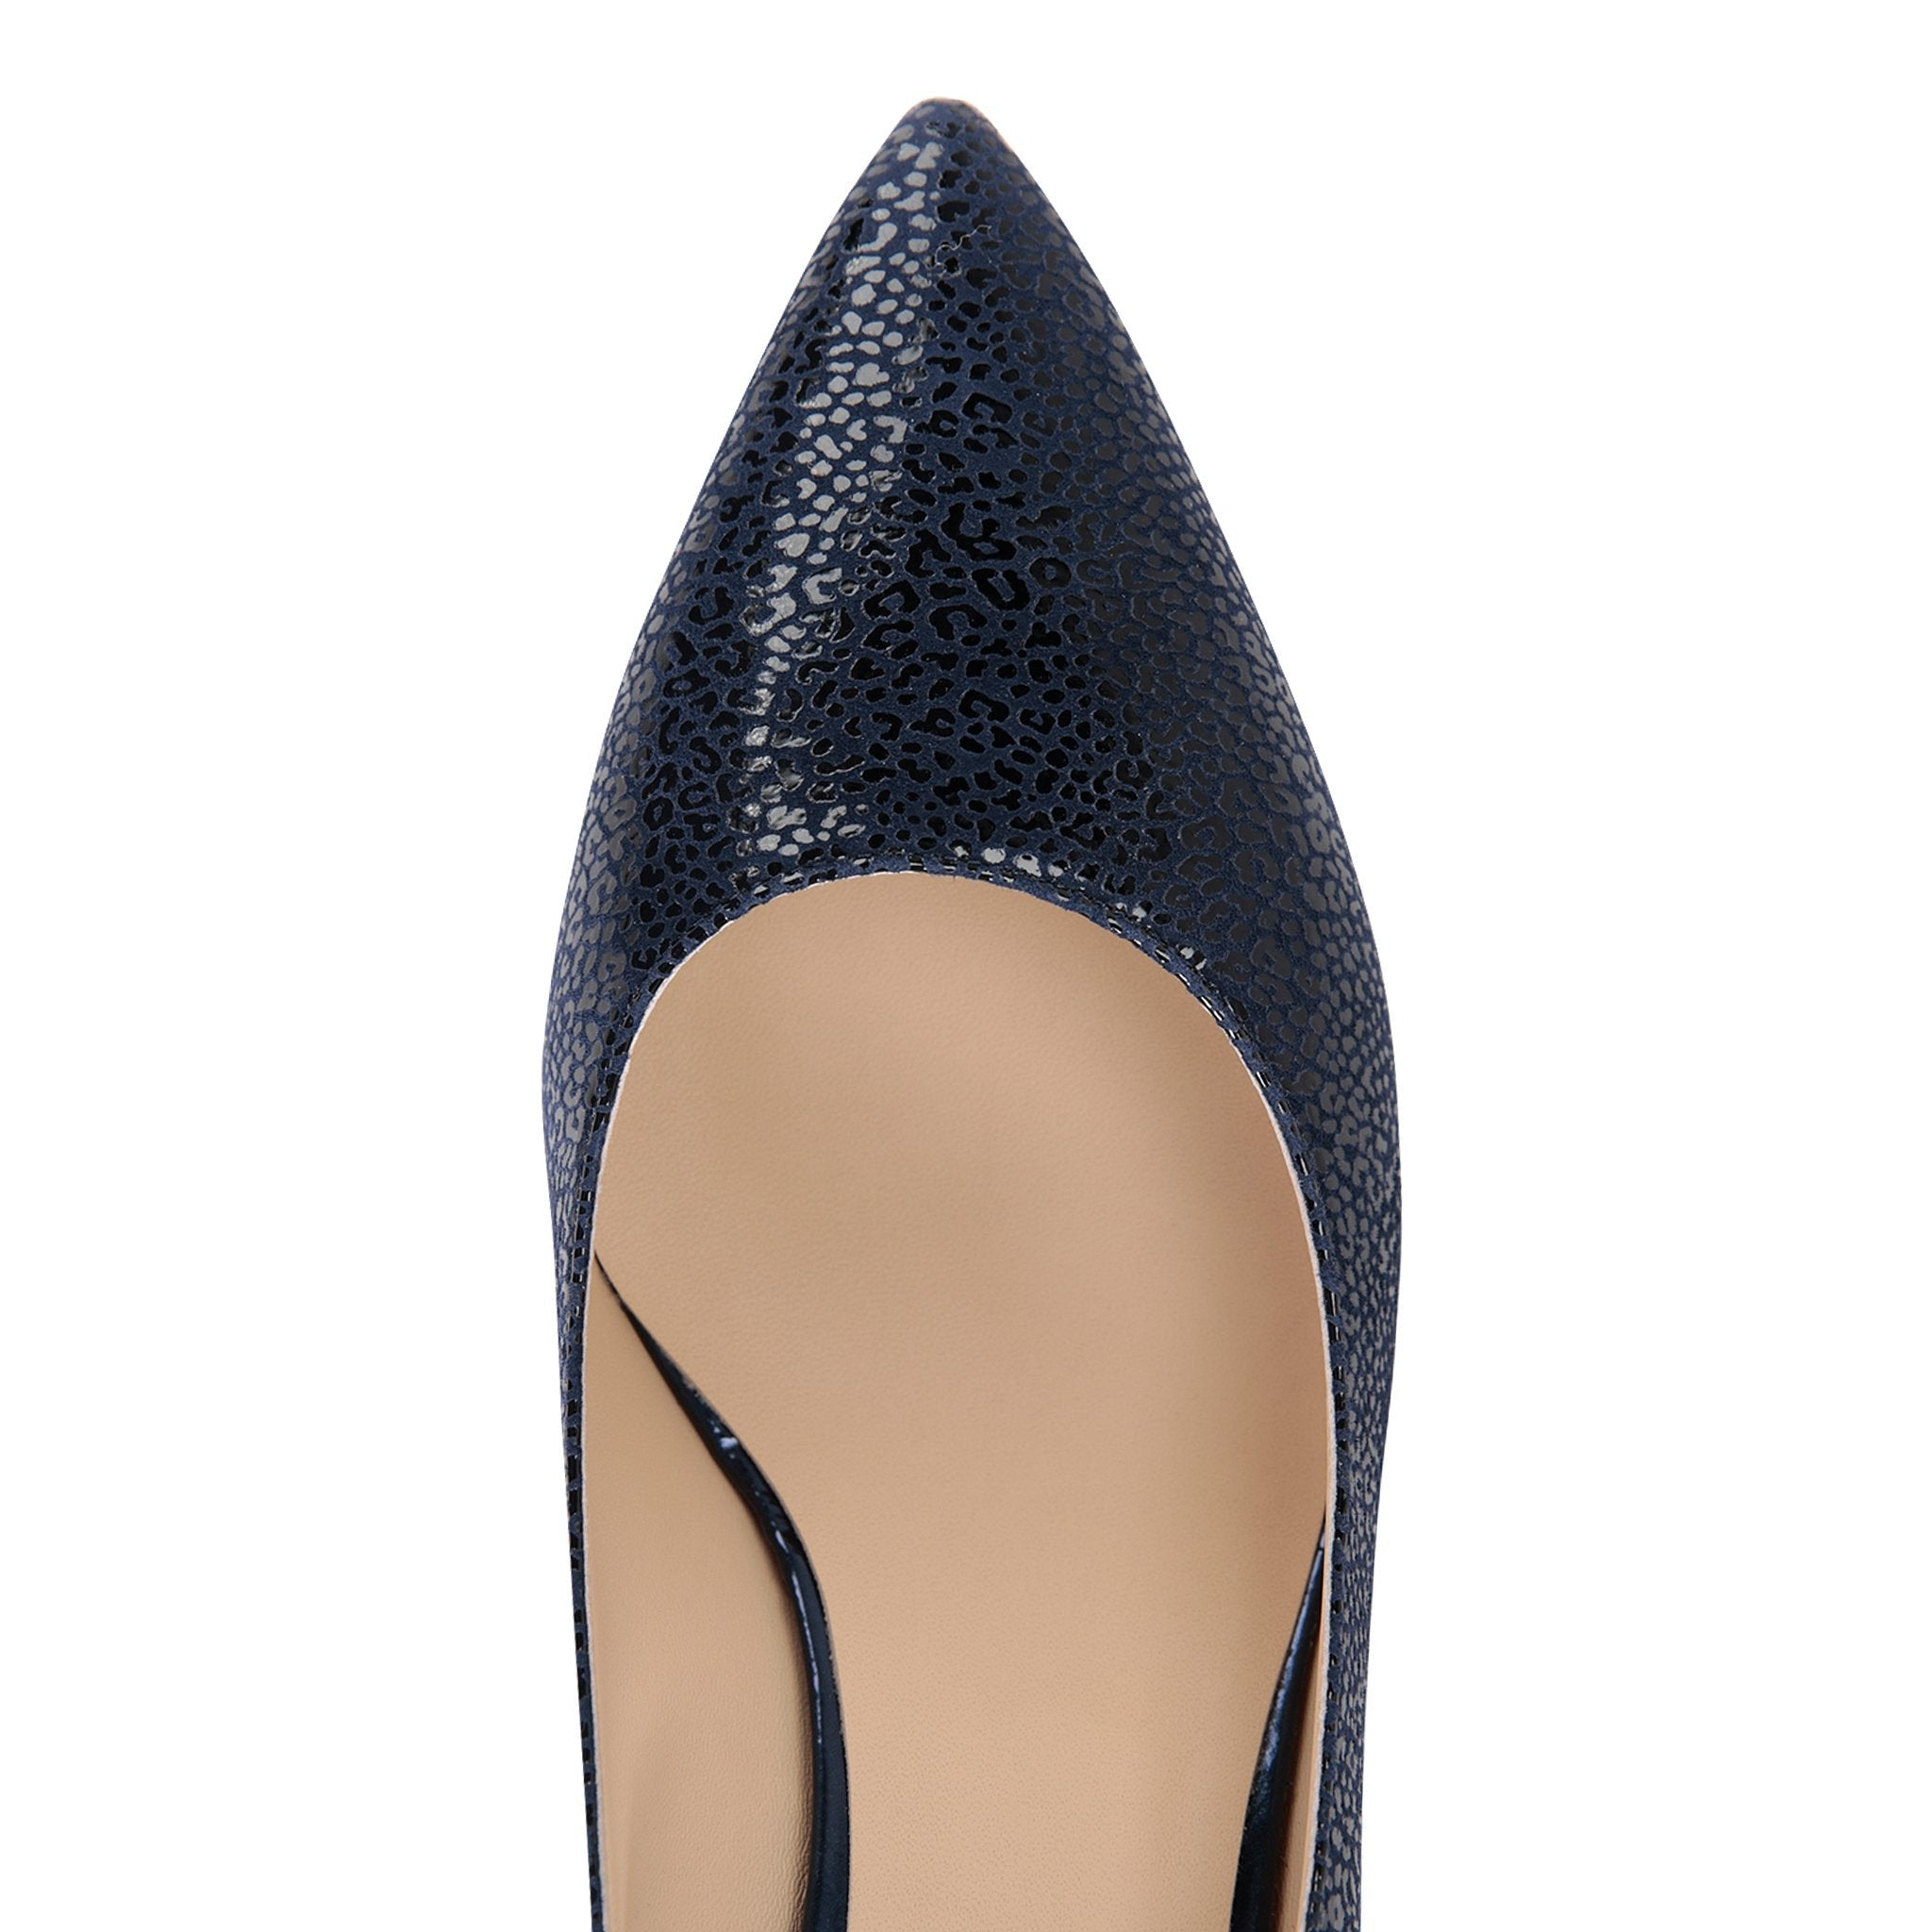 TRENTO - Savannah + Patent Midnight - VIAJIYU Shoes